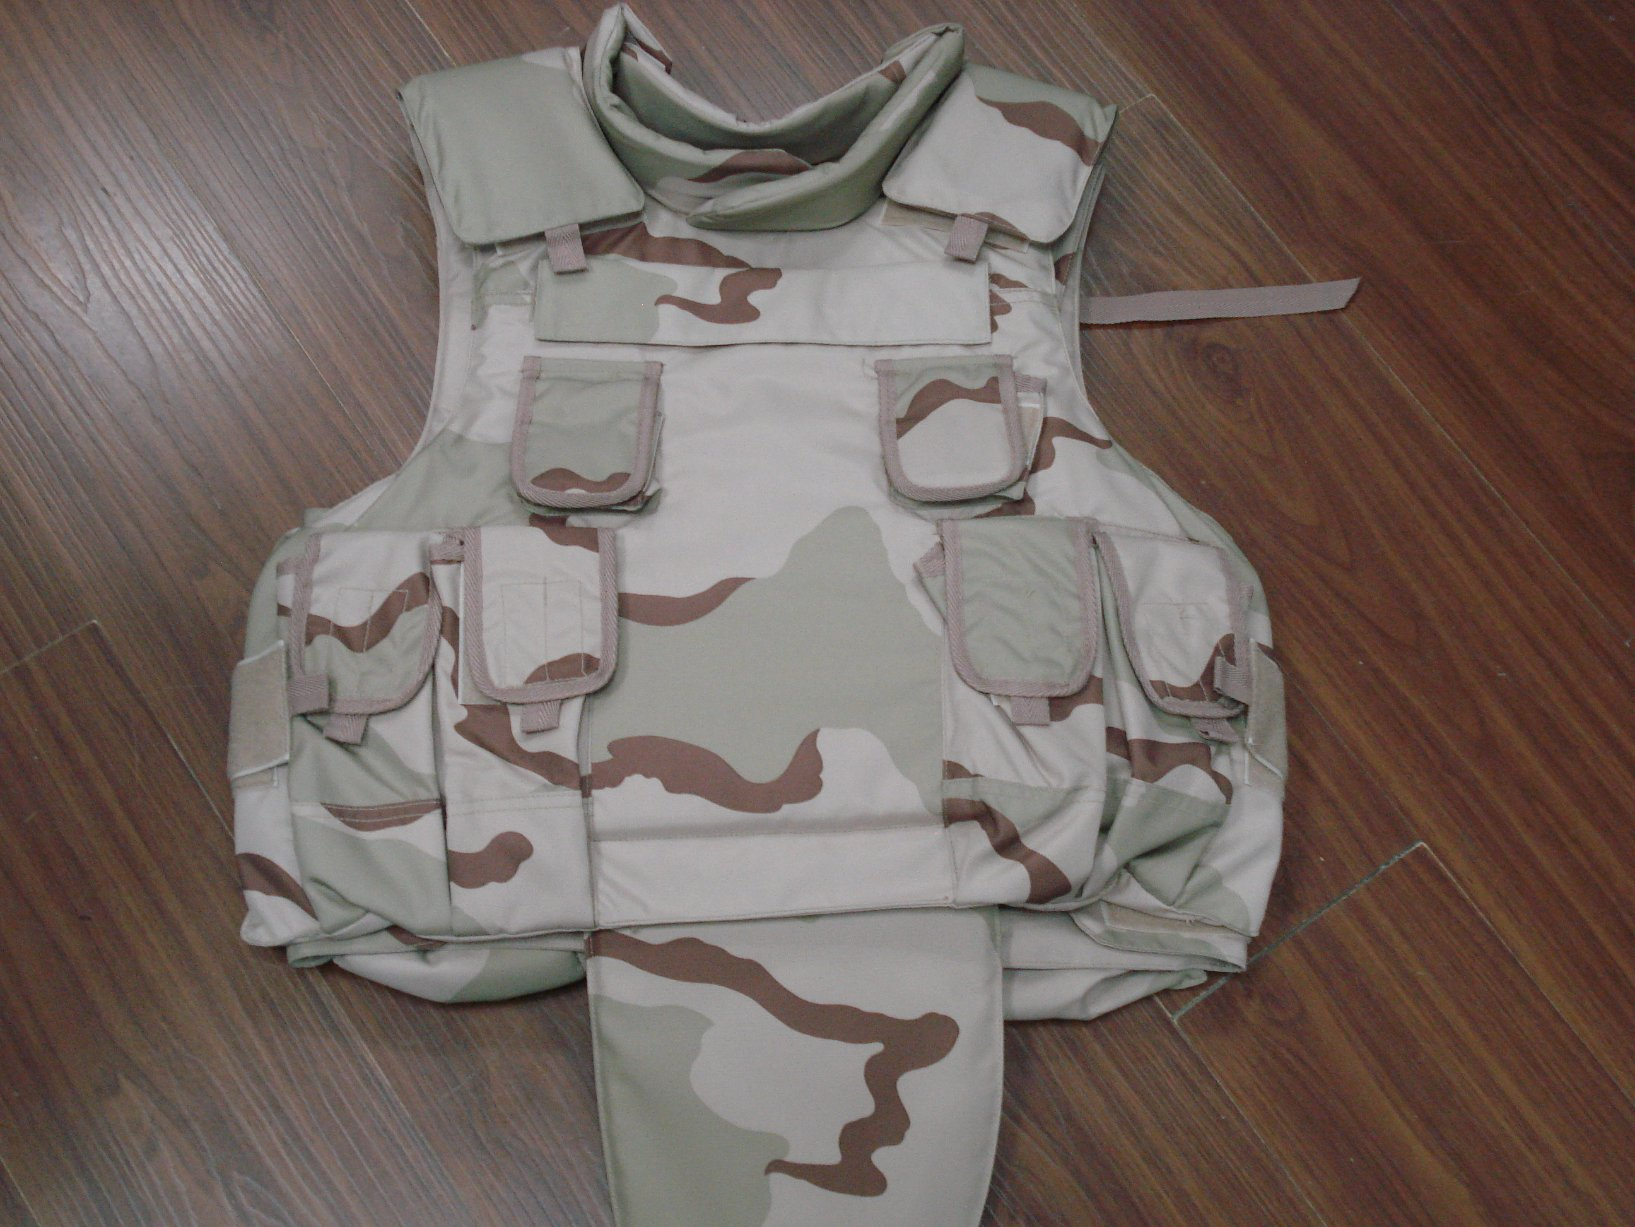 Military Iotv Full Protection Armor Ballistic Vest